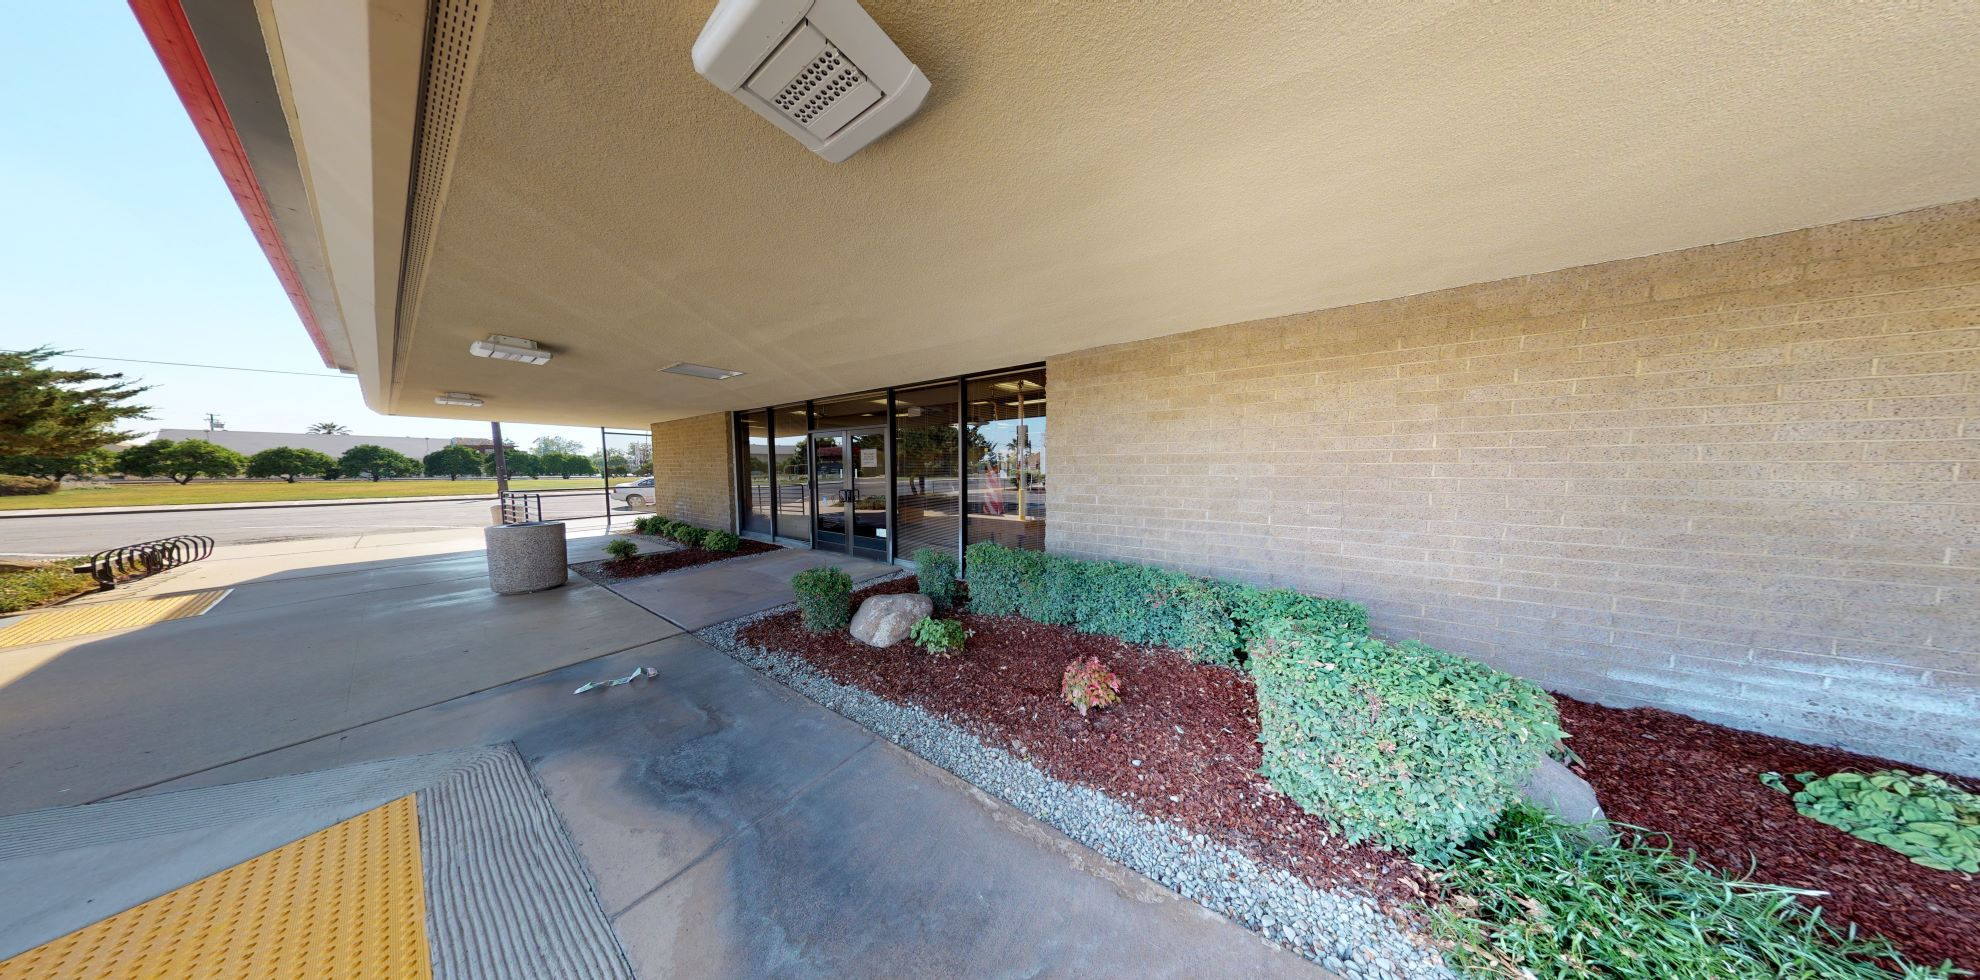 Bank of America financial center with drive-thru ATM | 100 E Pine St, Exeter, CA 93221